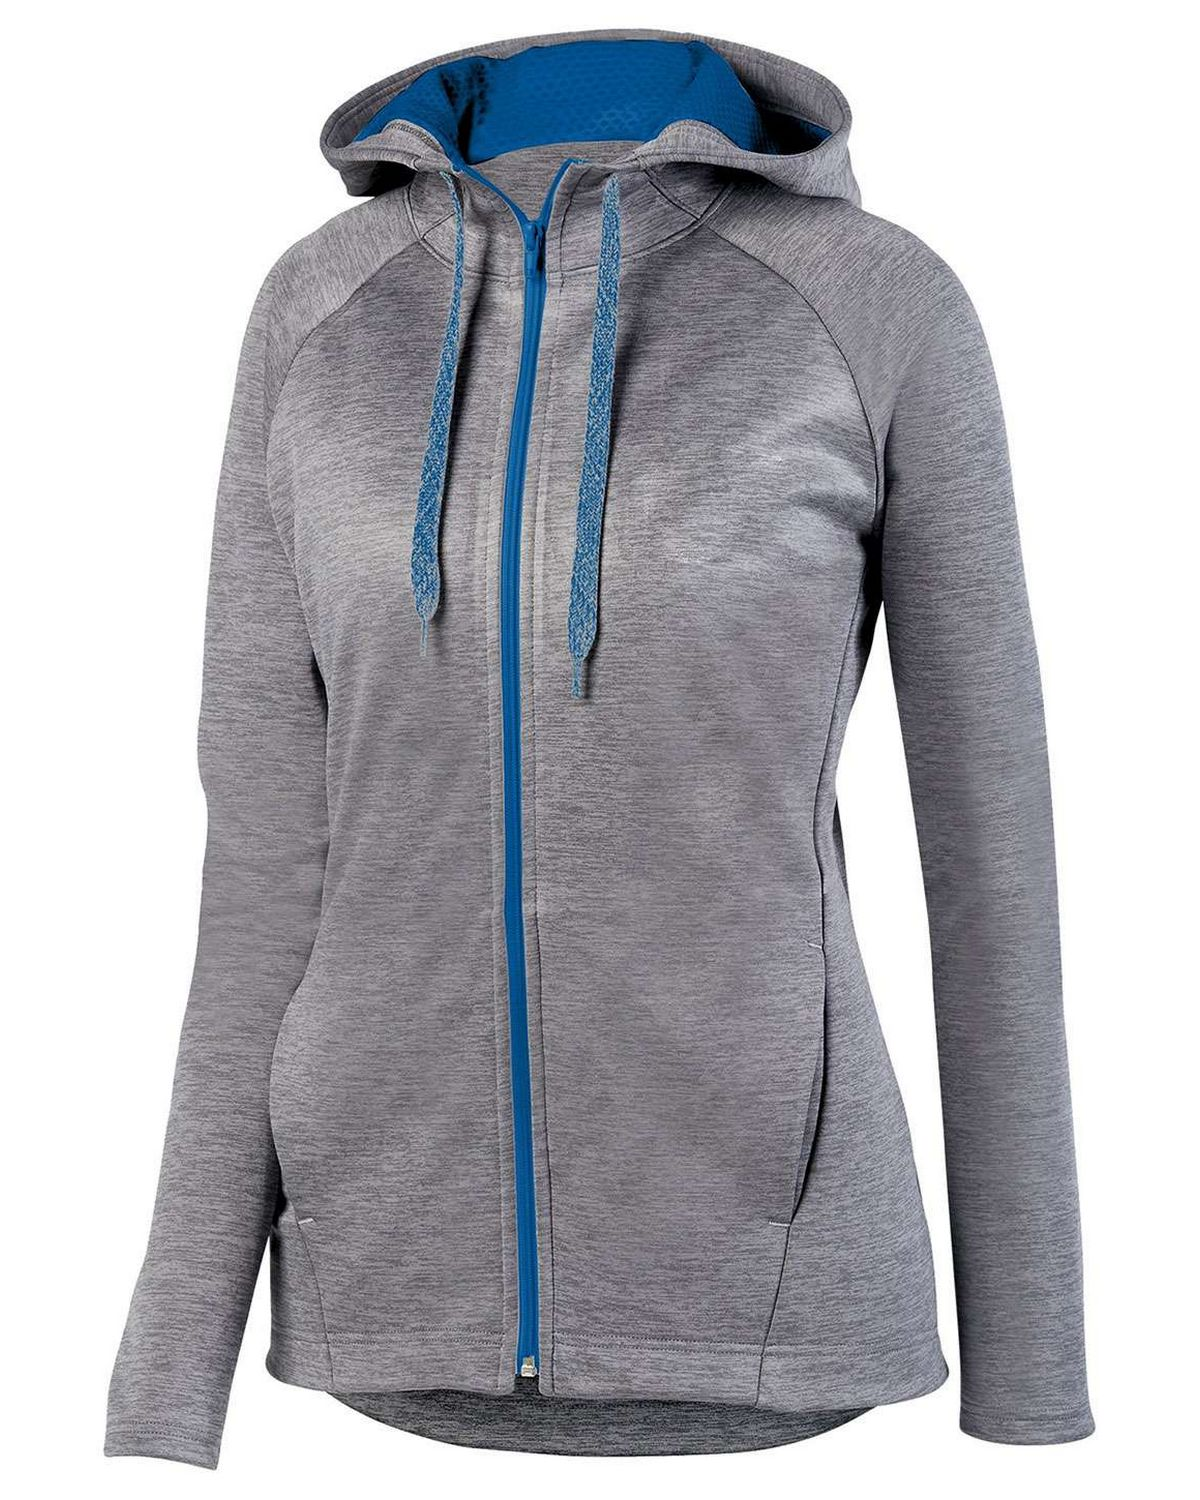 Augusta Sportswear 5558 Ladies Hoodie - Graphite/ Royal - L 5558